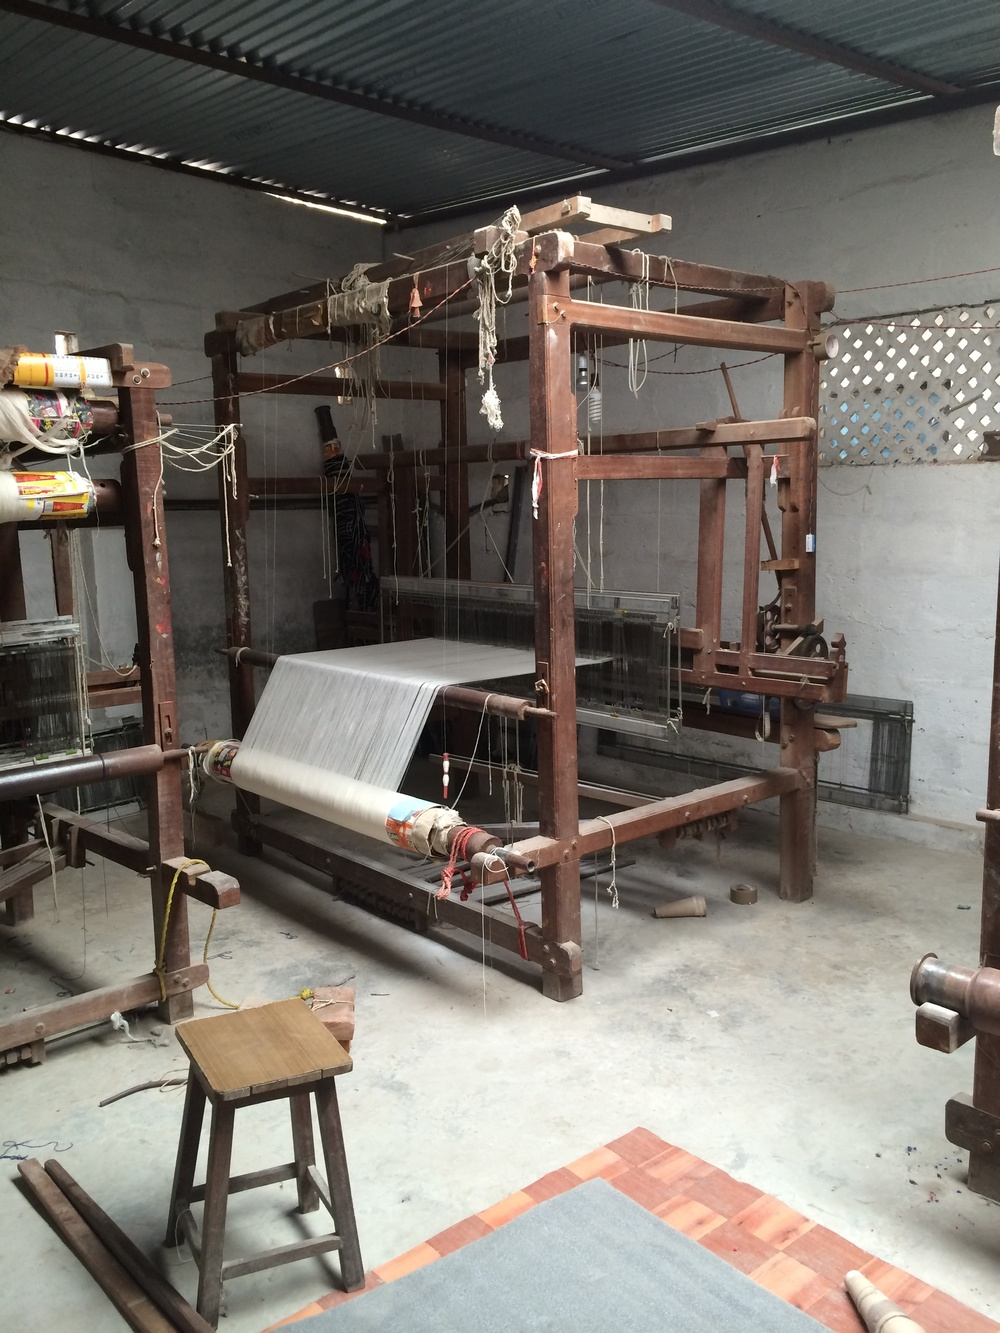 An old loom at rest.